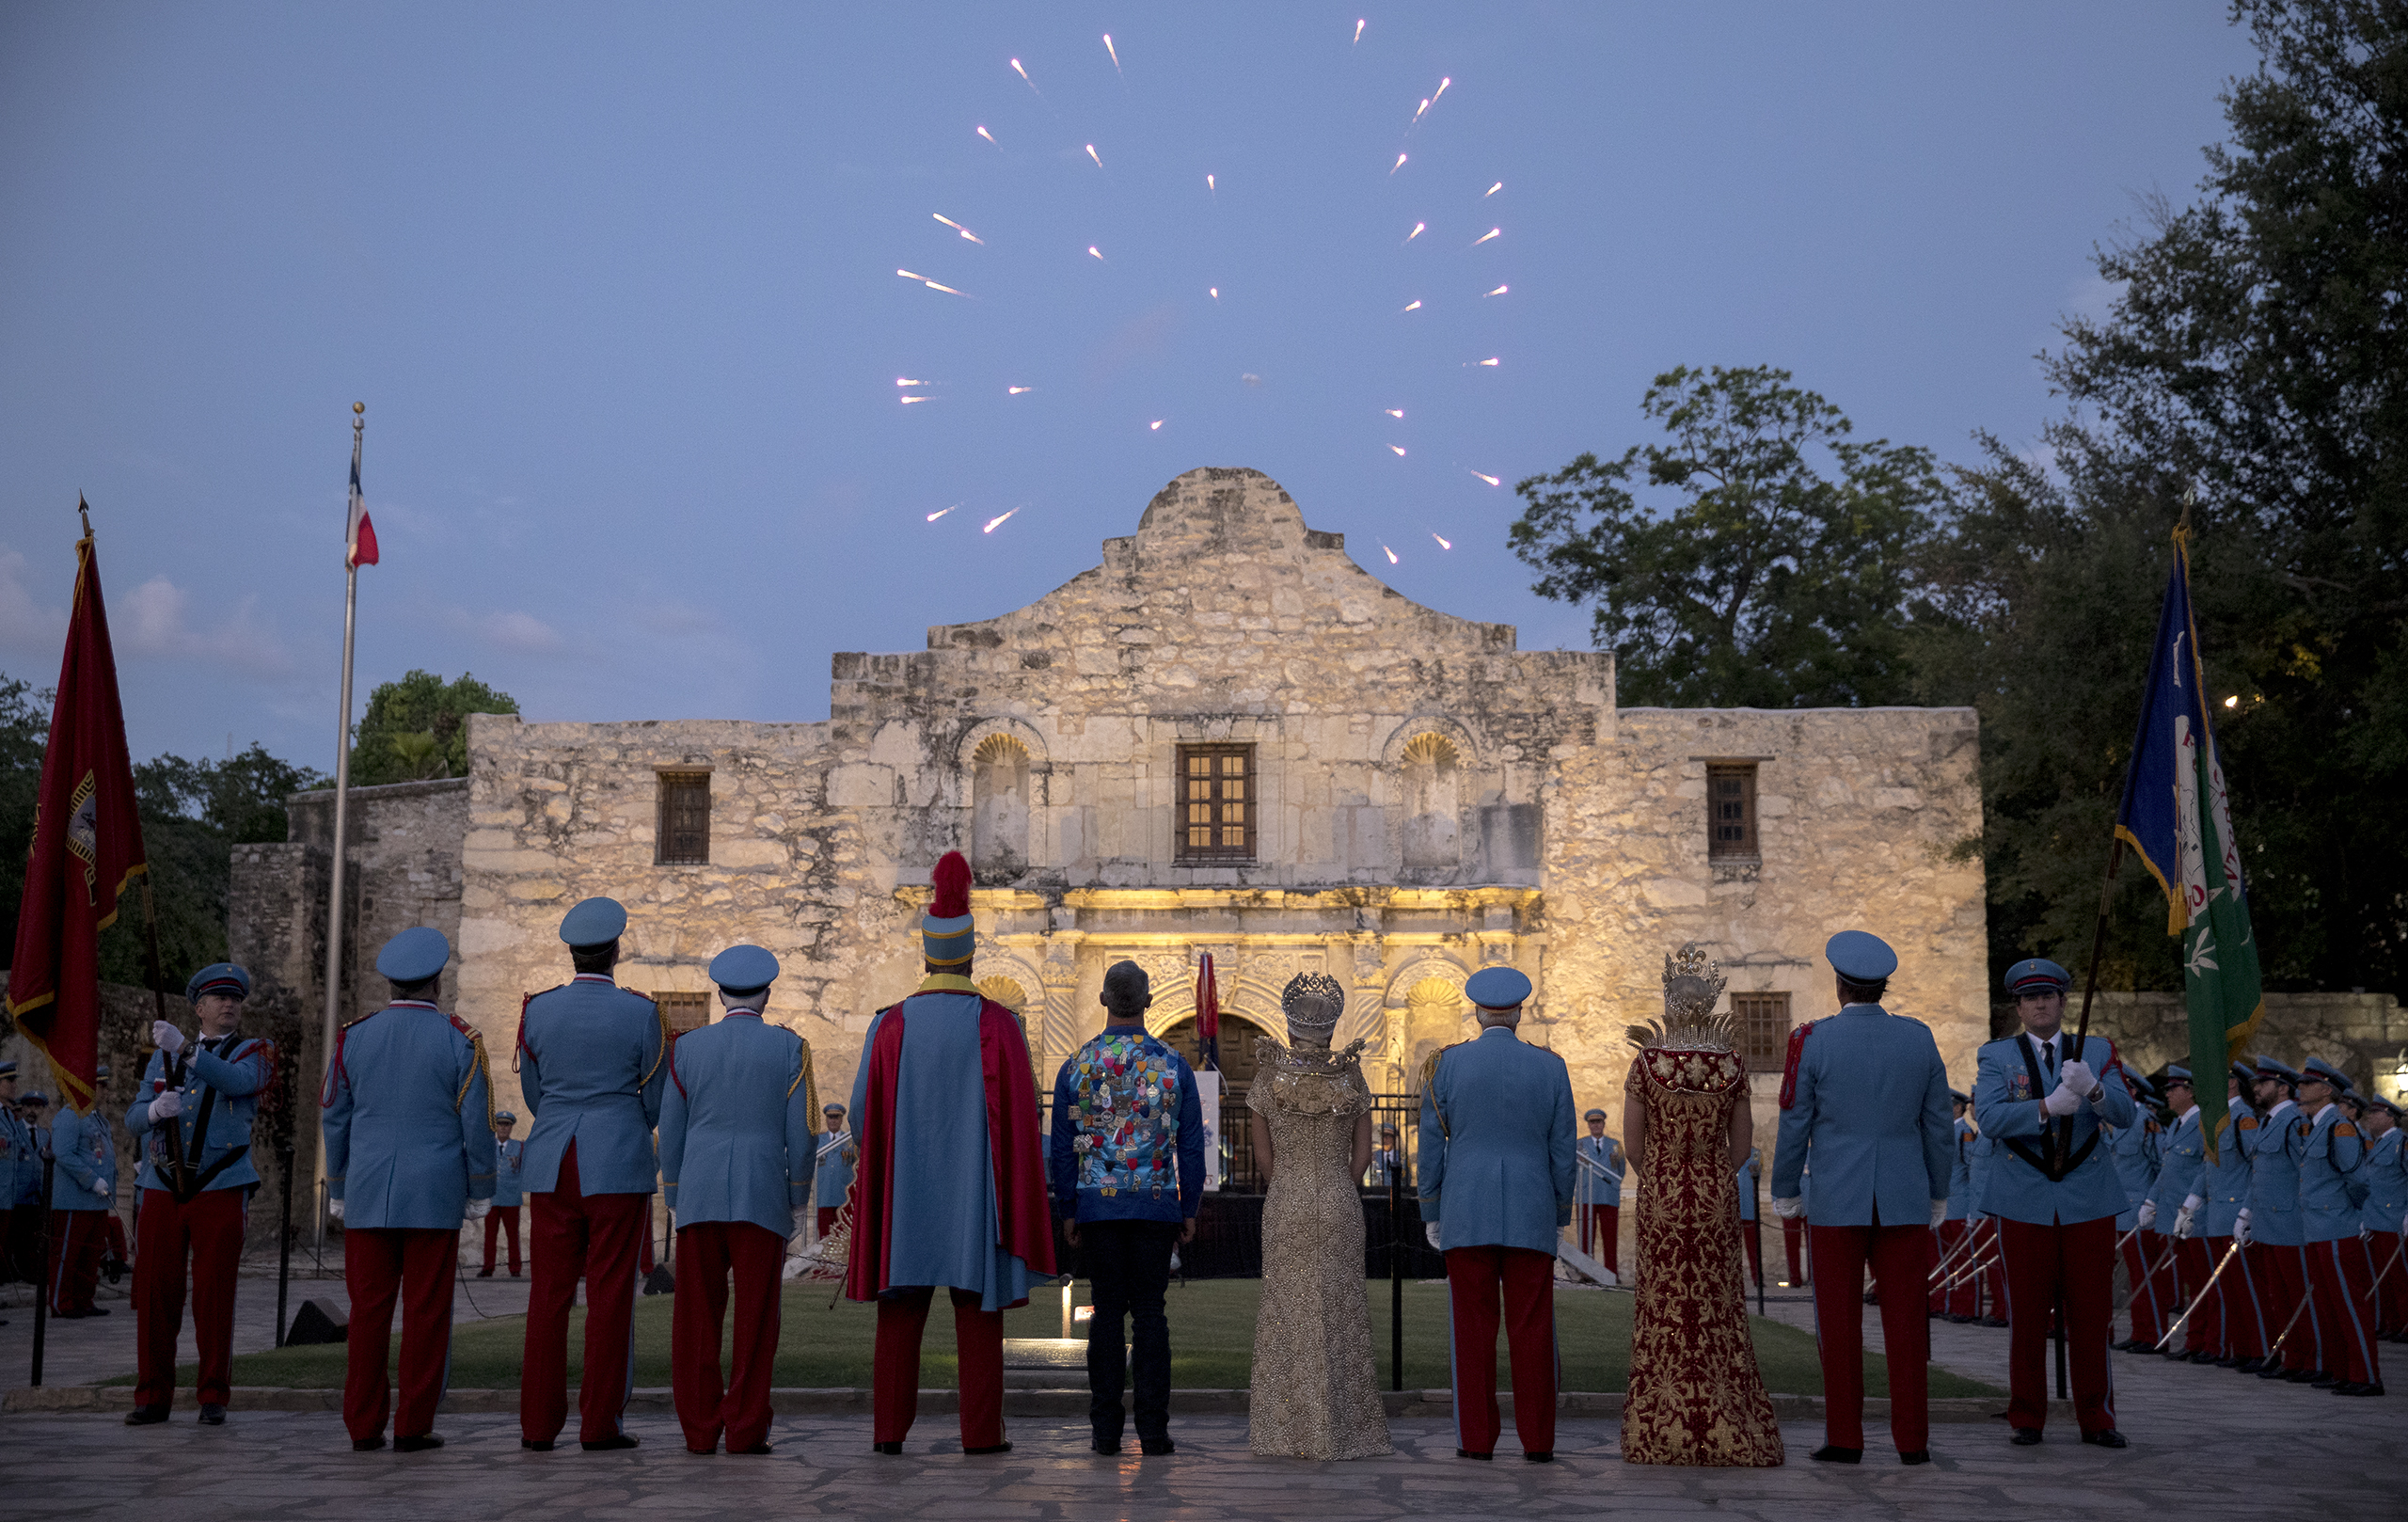 We should be fighting for the history of the Alamo, not about it